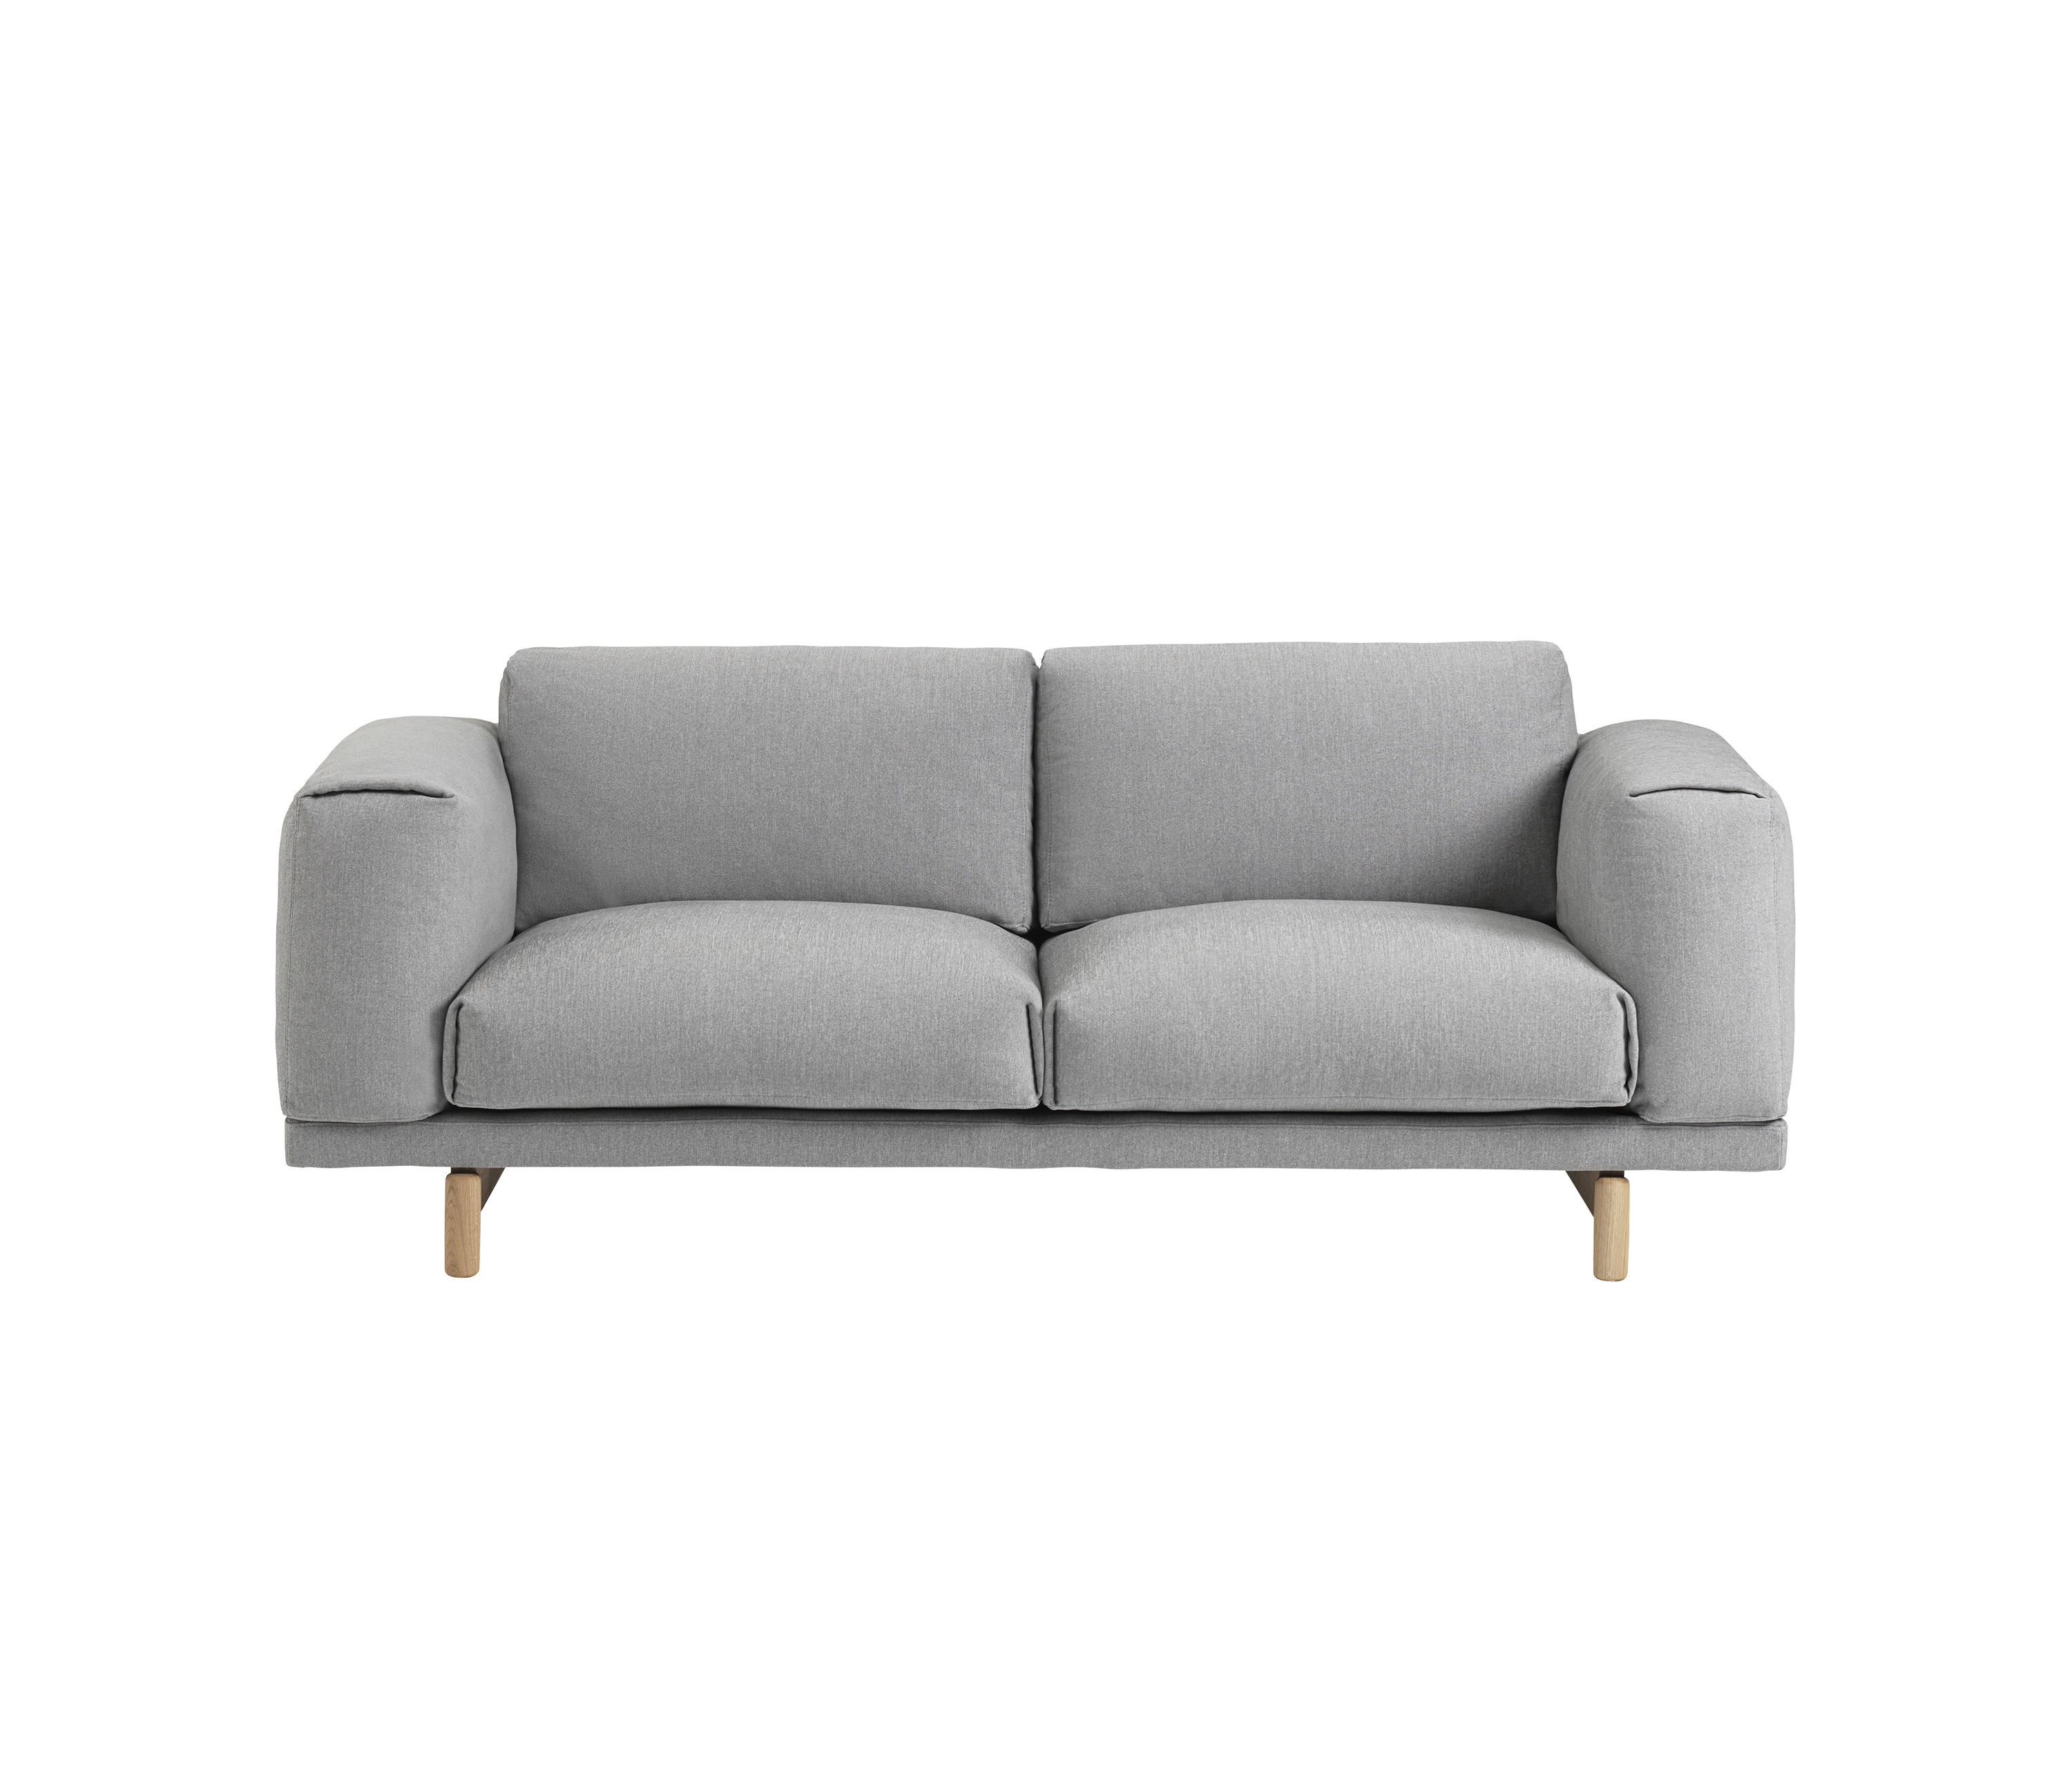 834b93e747a1 REST | 2-SEATER - Sofas from Muuto | Architonic